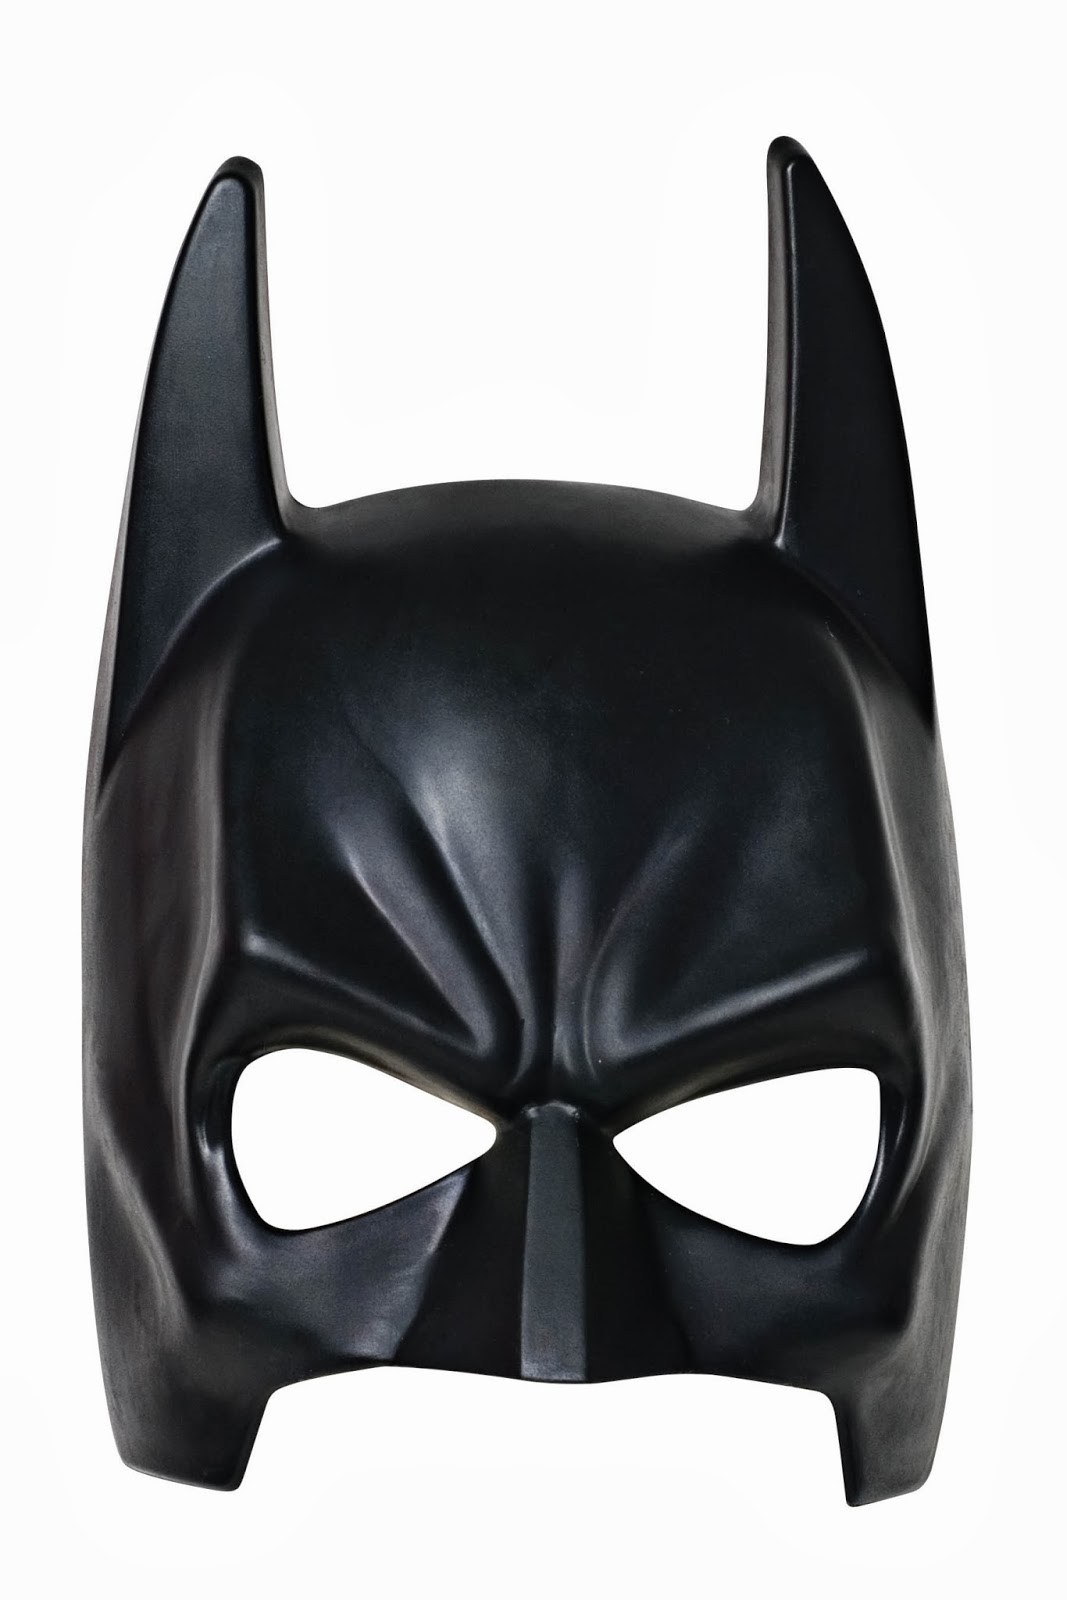 Batman And Batgirl Free Printable Masks Oh My Fiesta